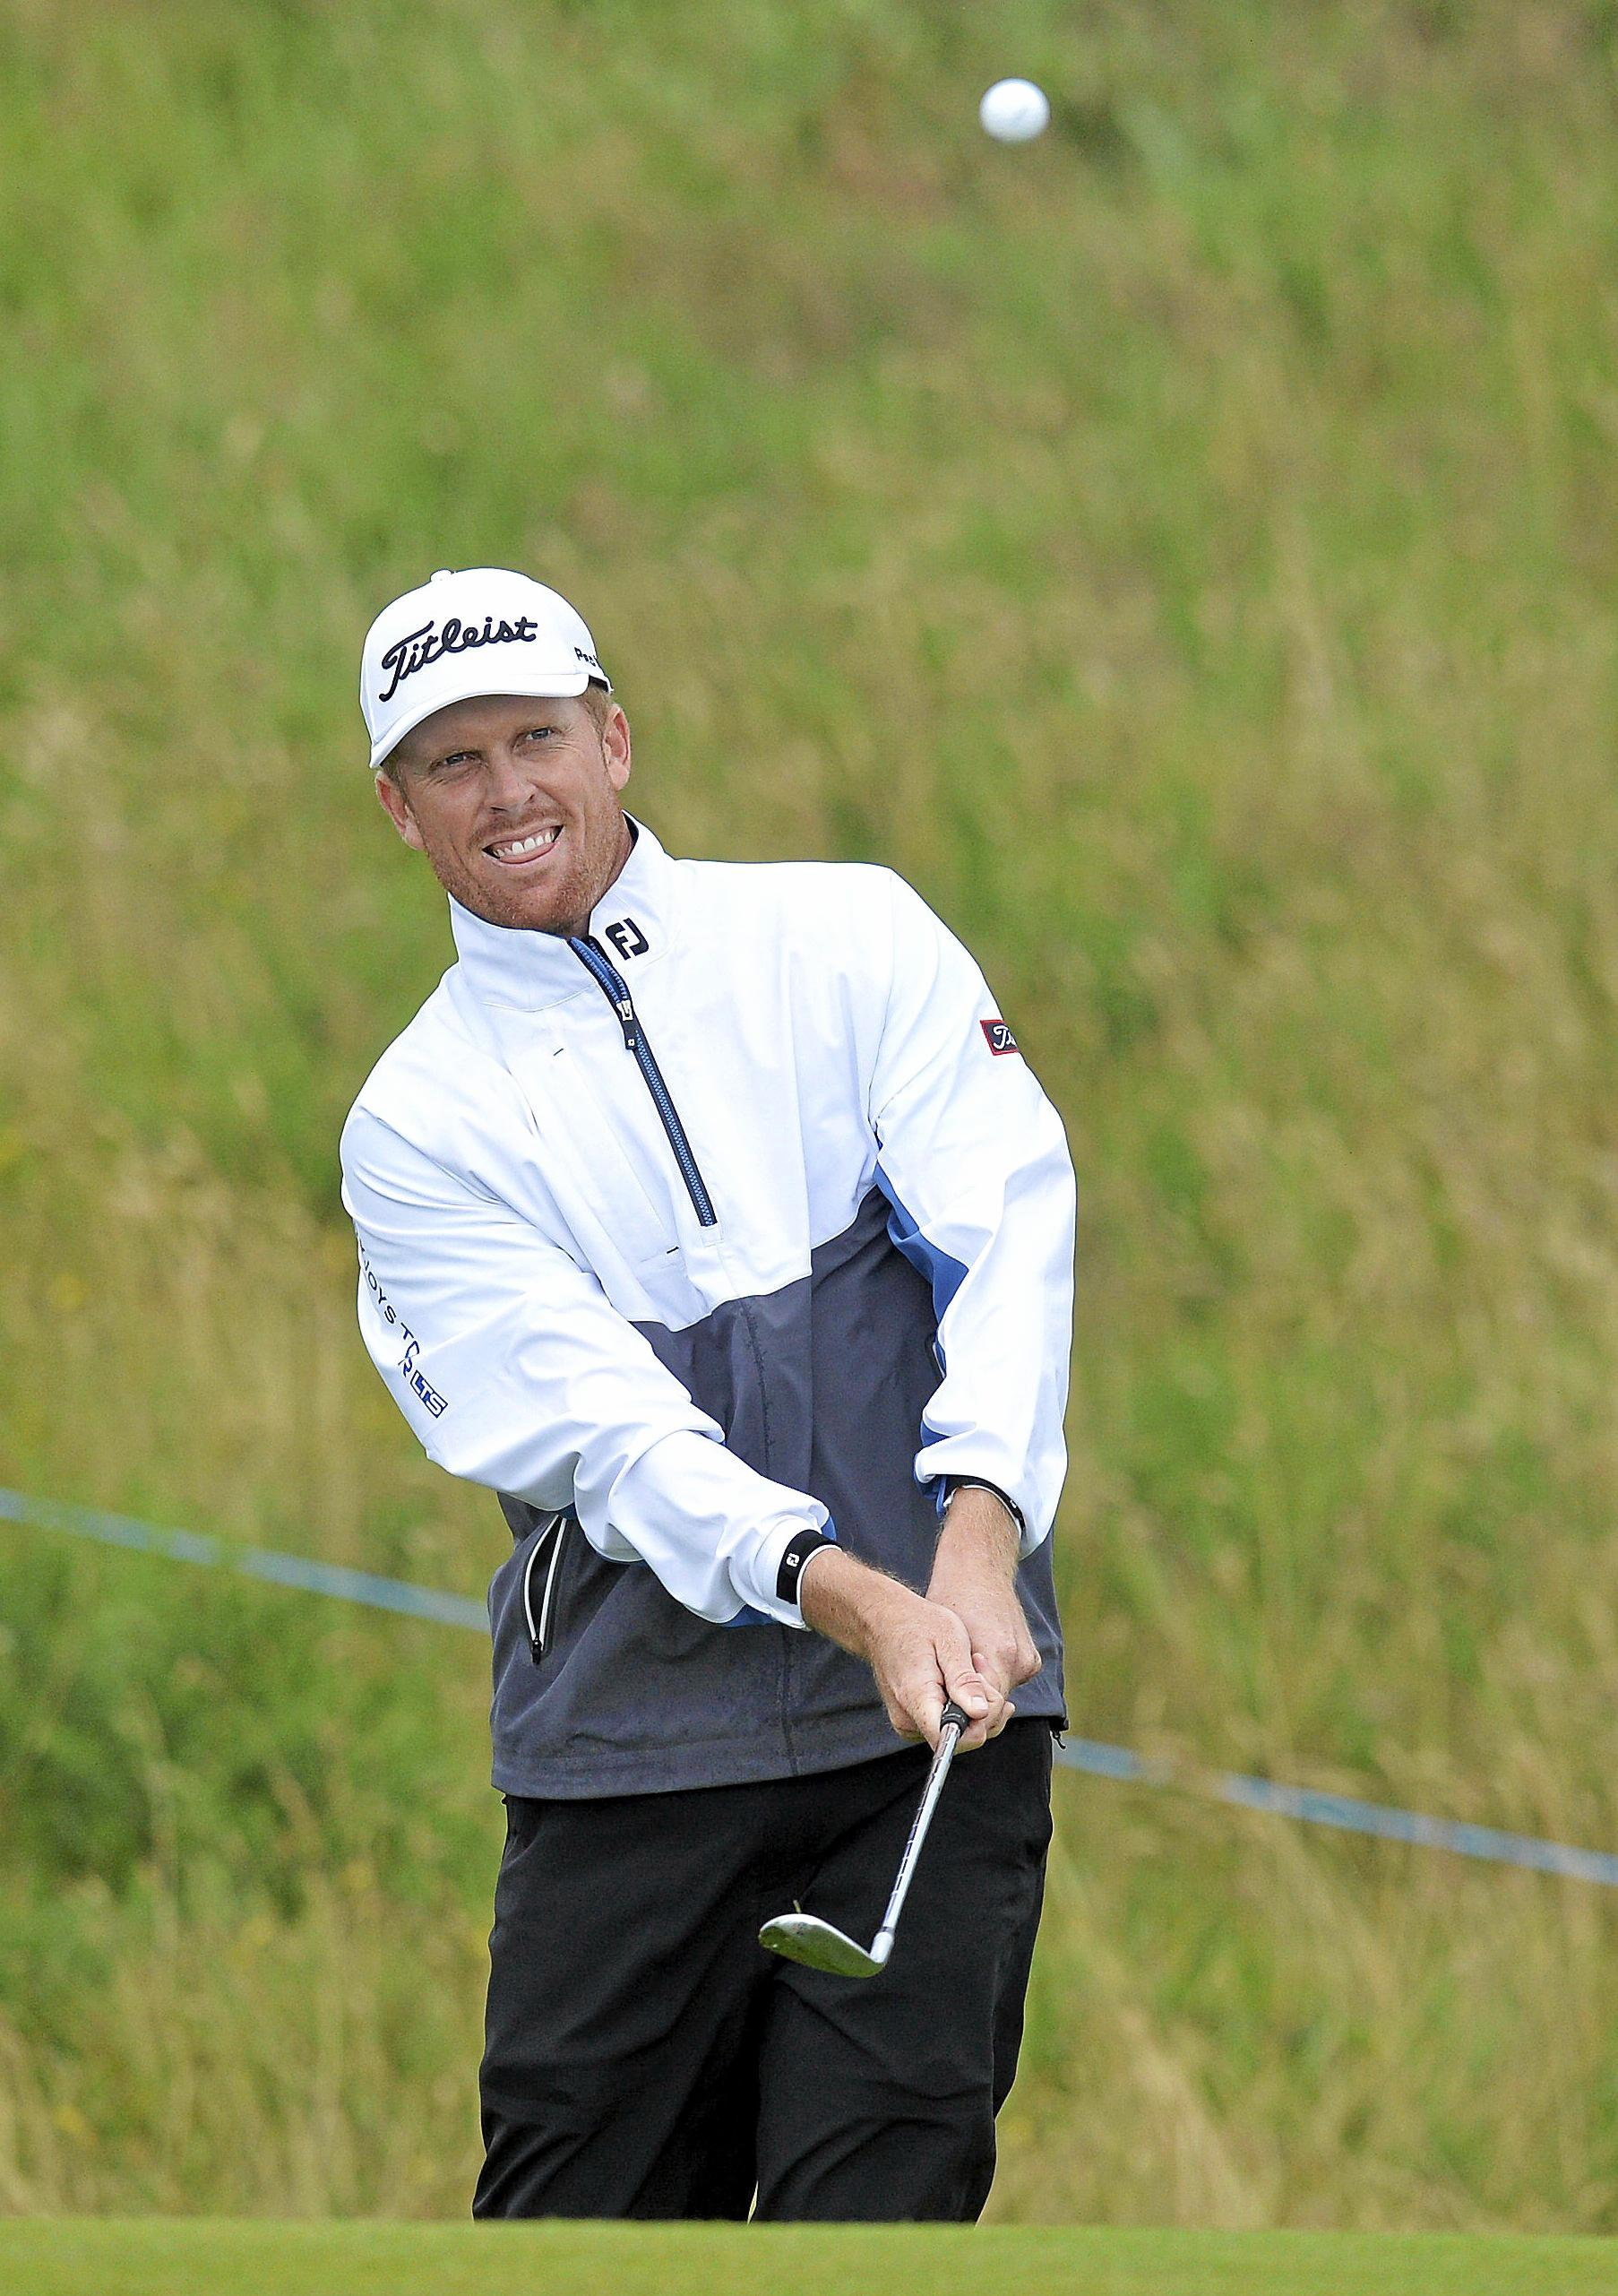 ON PAR: Australia's Andrew Dodt has qualified for the British Open with a fourth place finish at the Scottish Open.